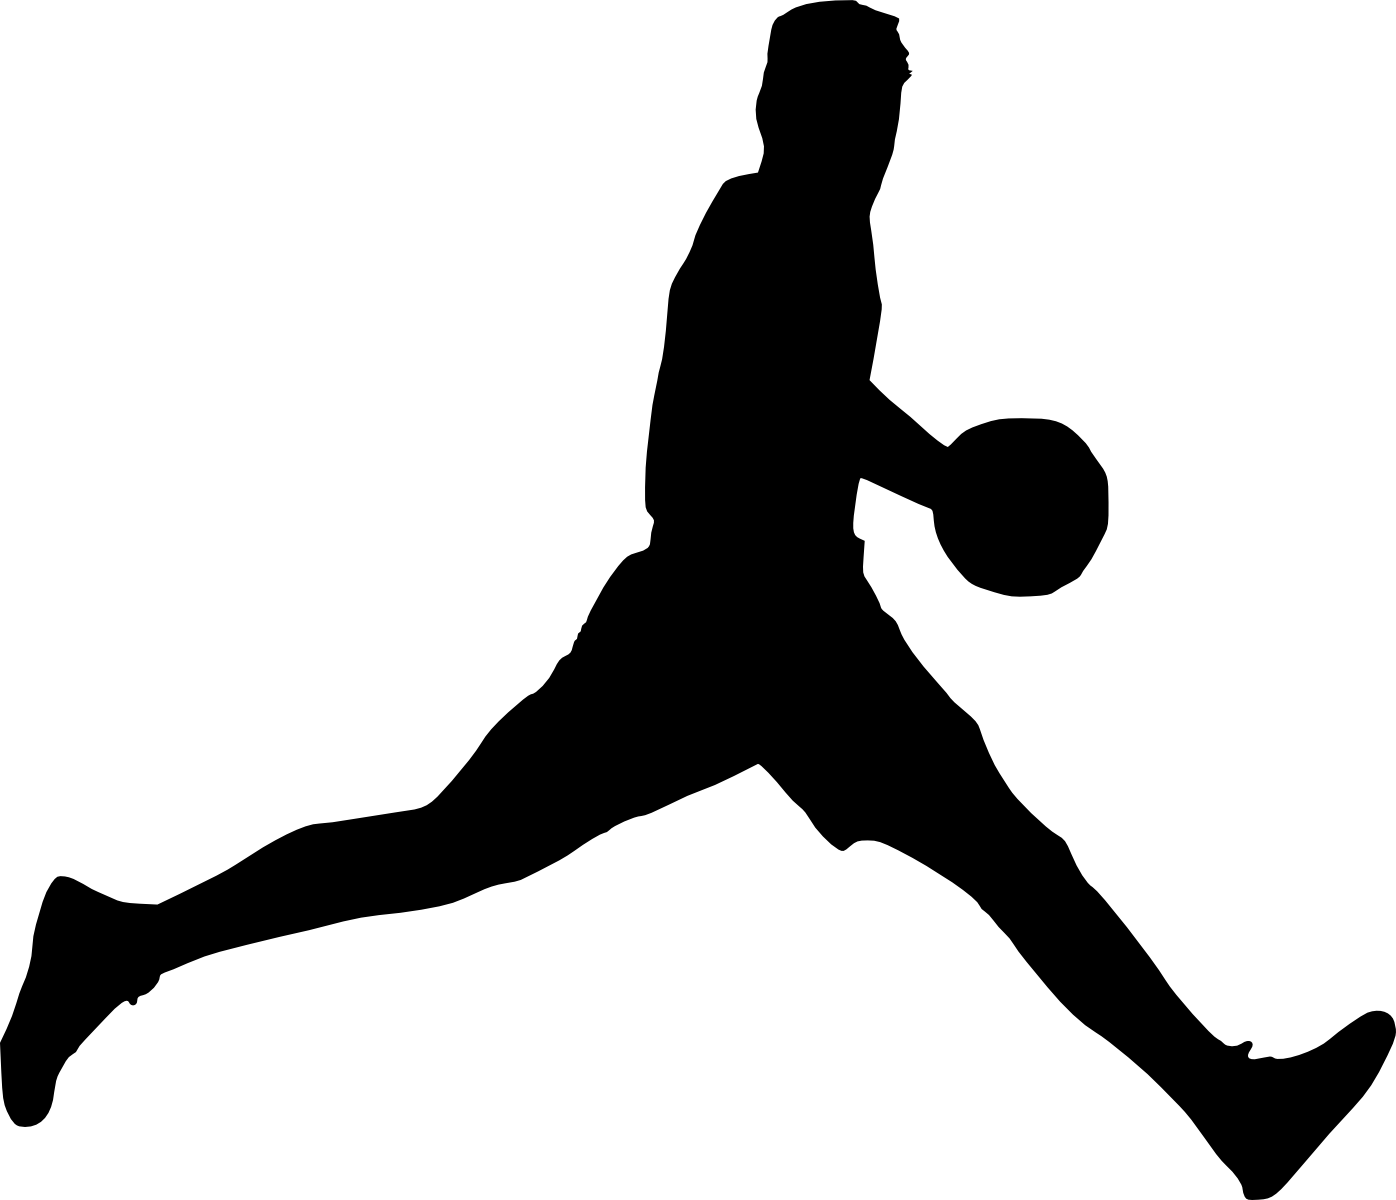 Girl basketball players clipart svg transparent Silhouette Of A Basketball Player at GetDrawings.com | Free for ... svg transparent